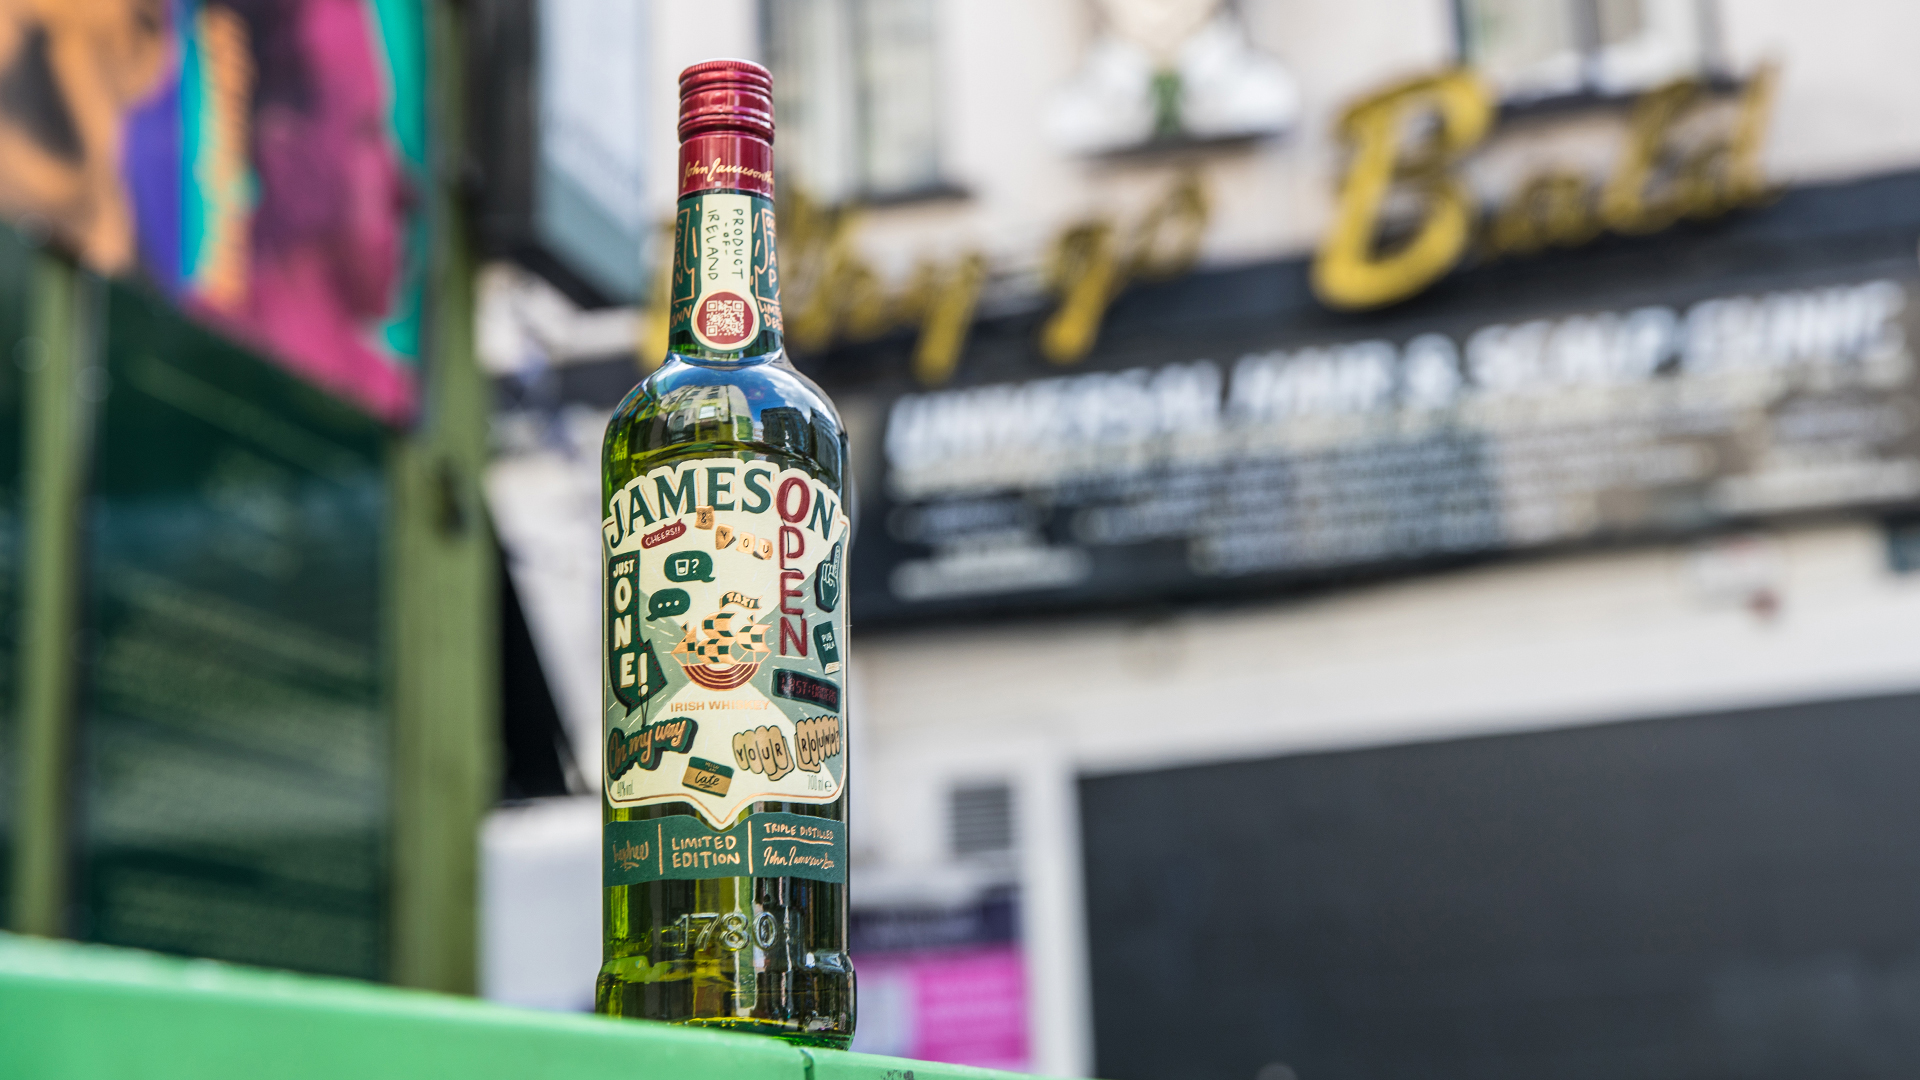 Cover image: Jameson 2020 Limited Edition Bottle design